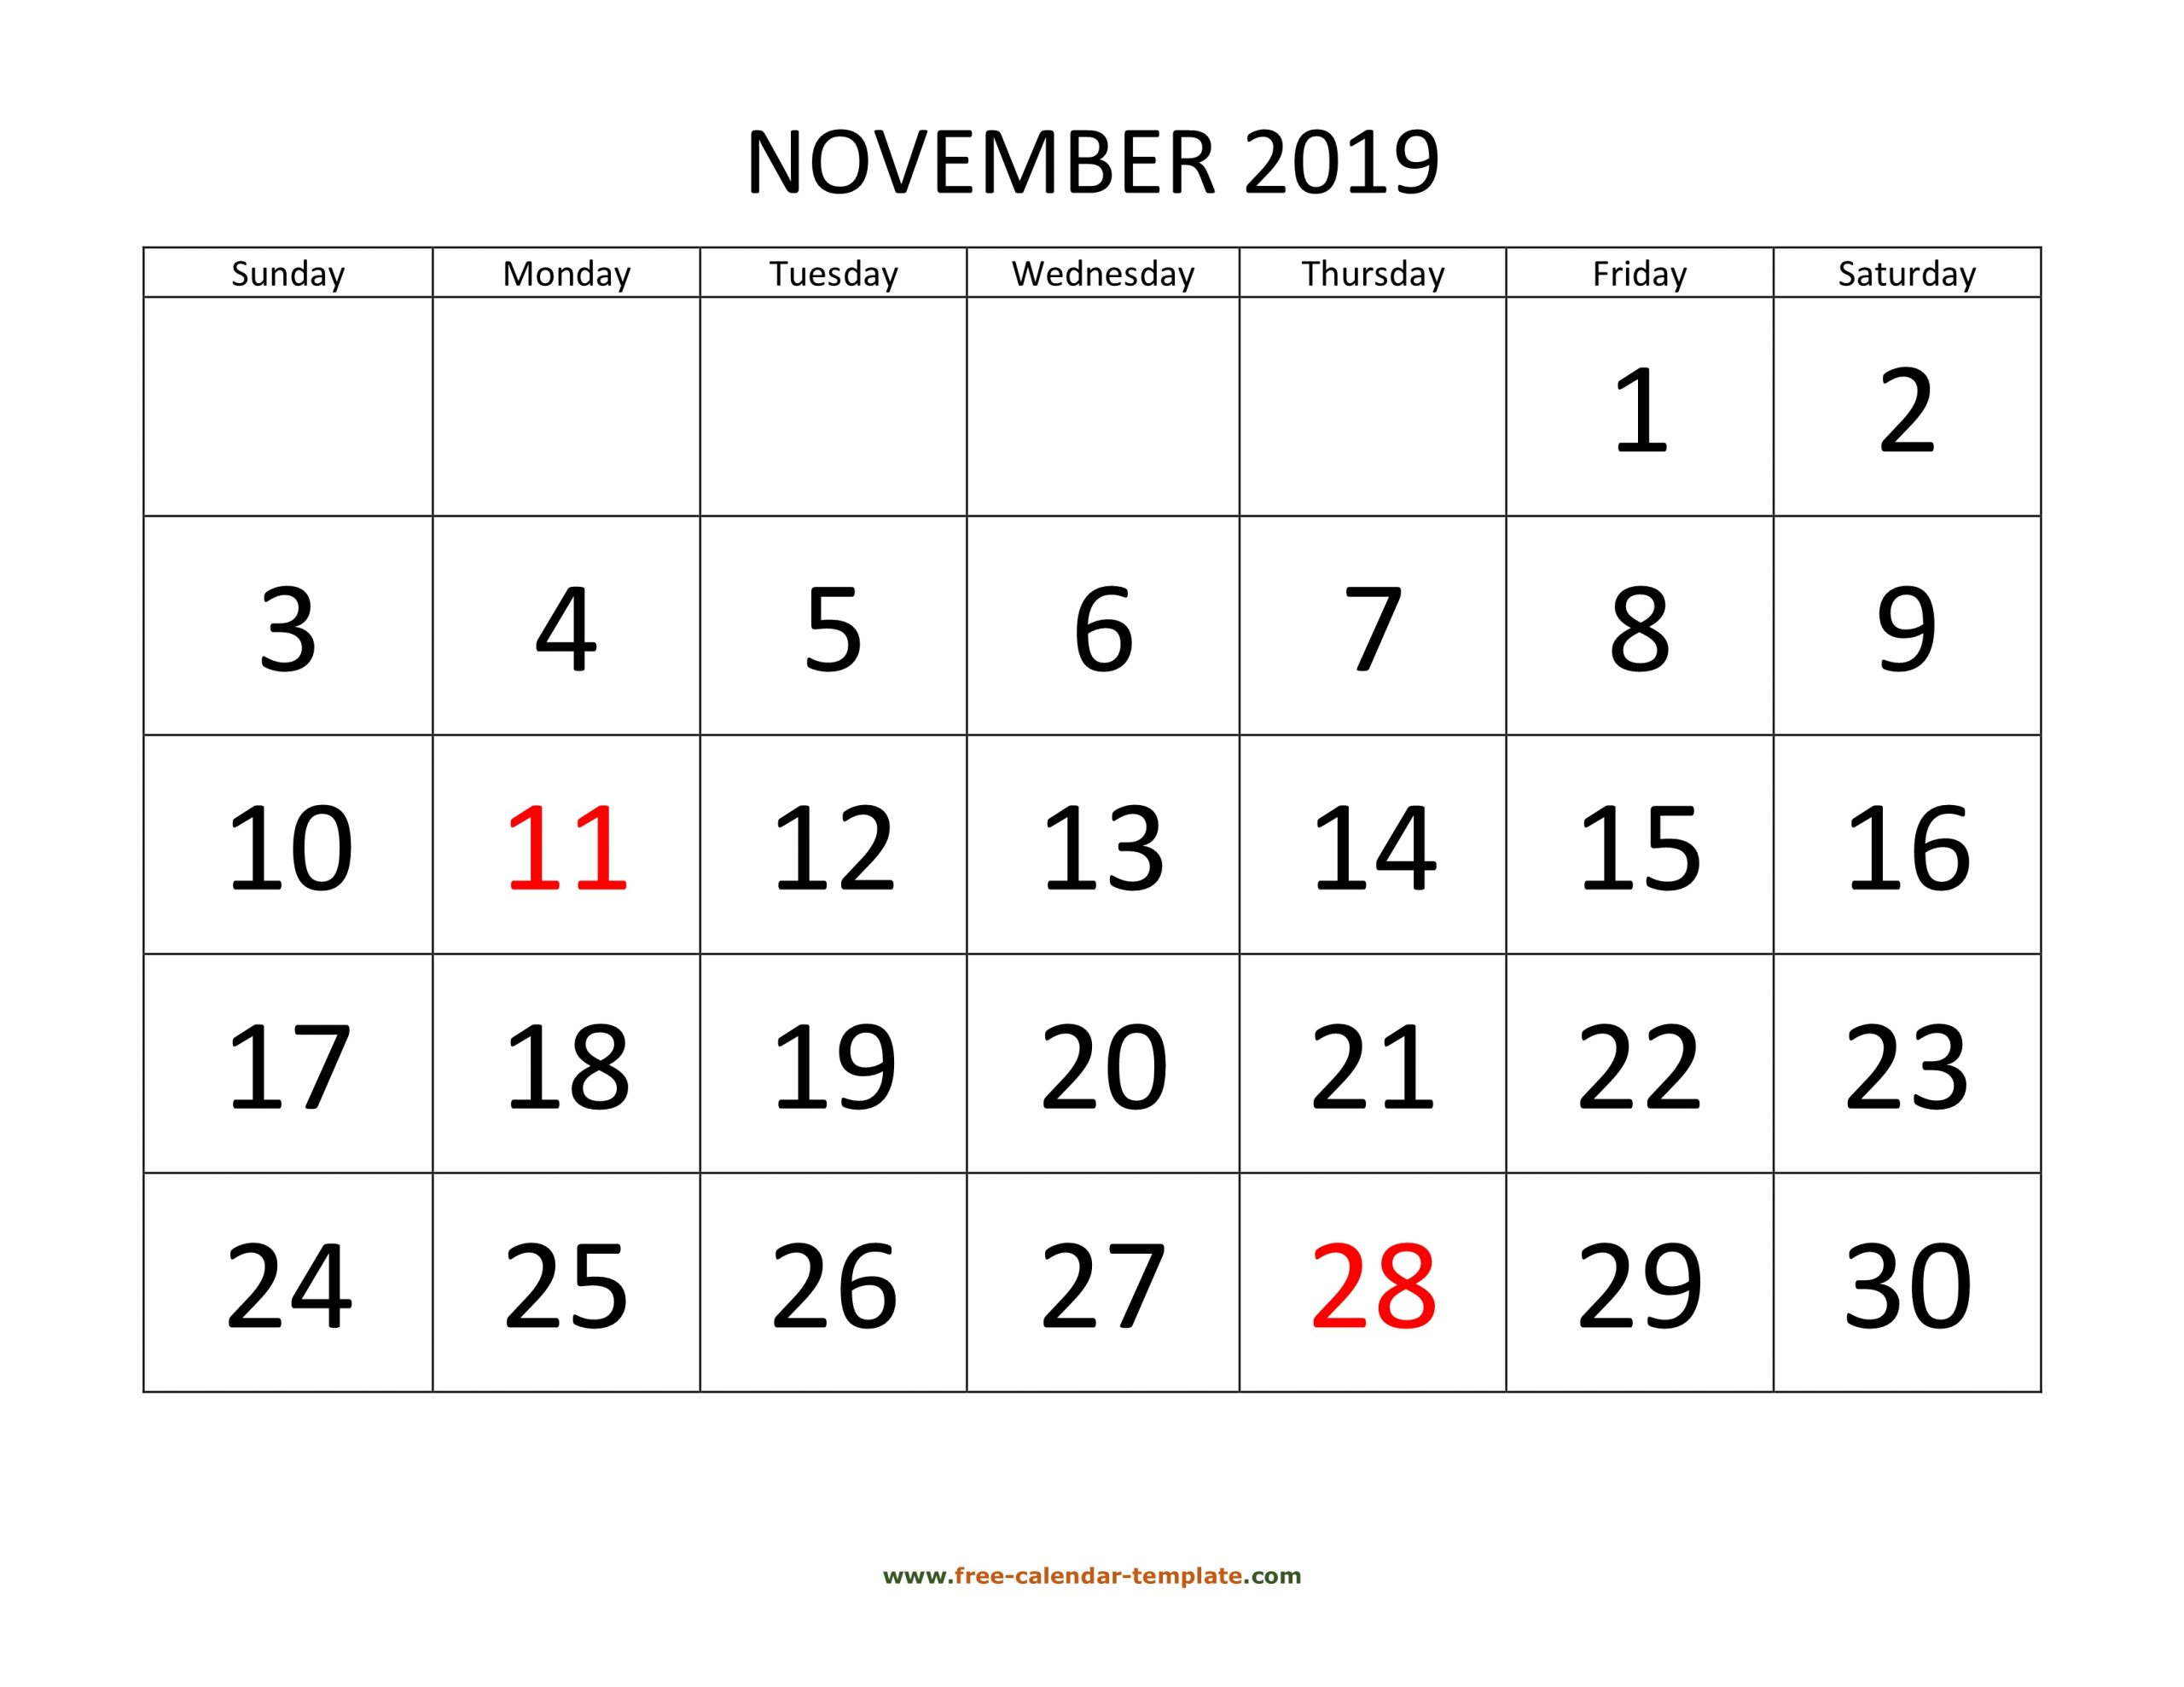 November 2019 Calendar Designed With Large Font (Horizontal